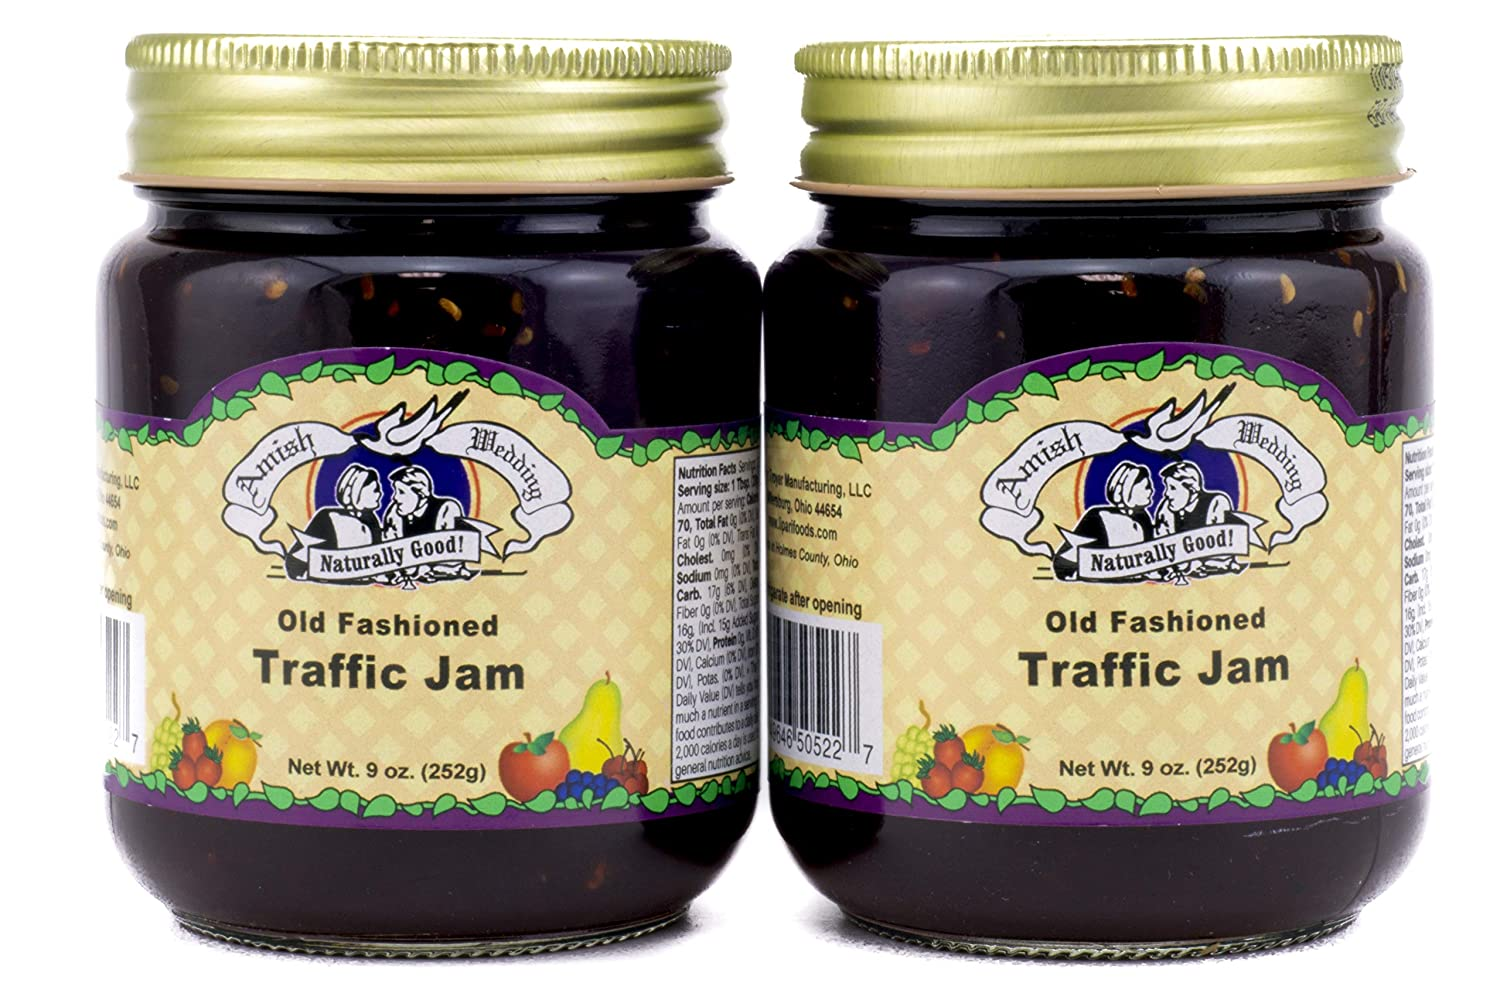 Amish Wedding Foods Old Fashioned Traffic Jam- 9 oz - 2 Jars